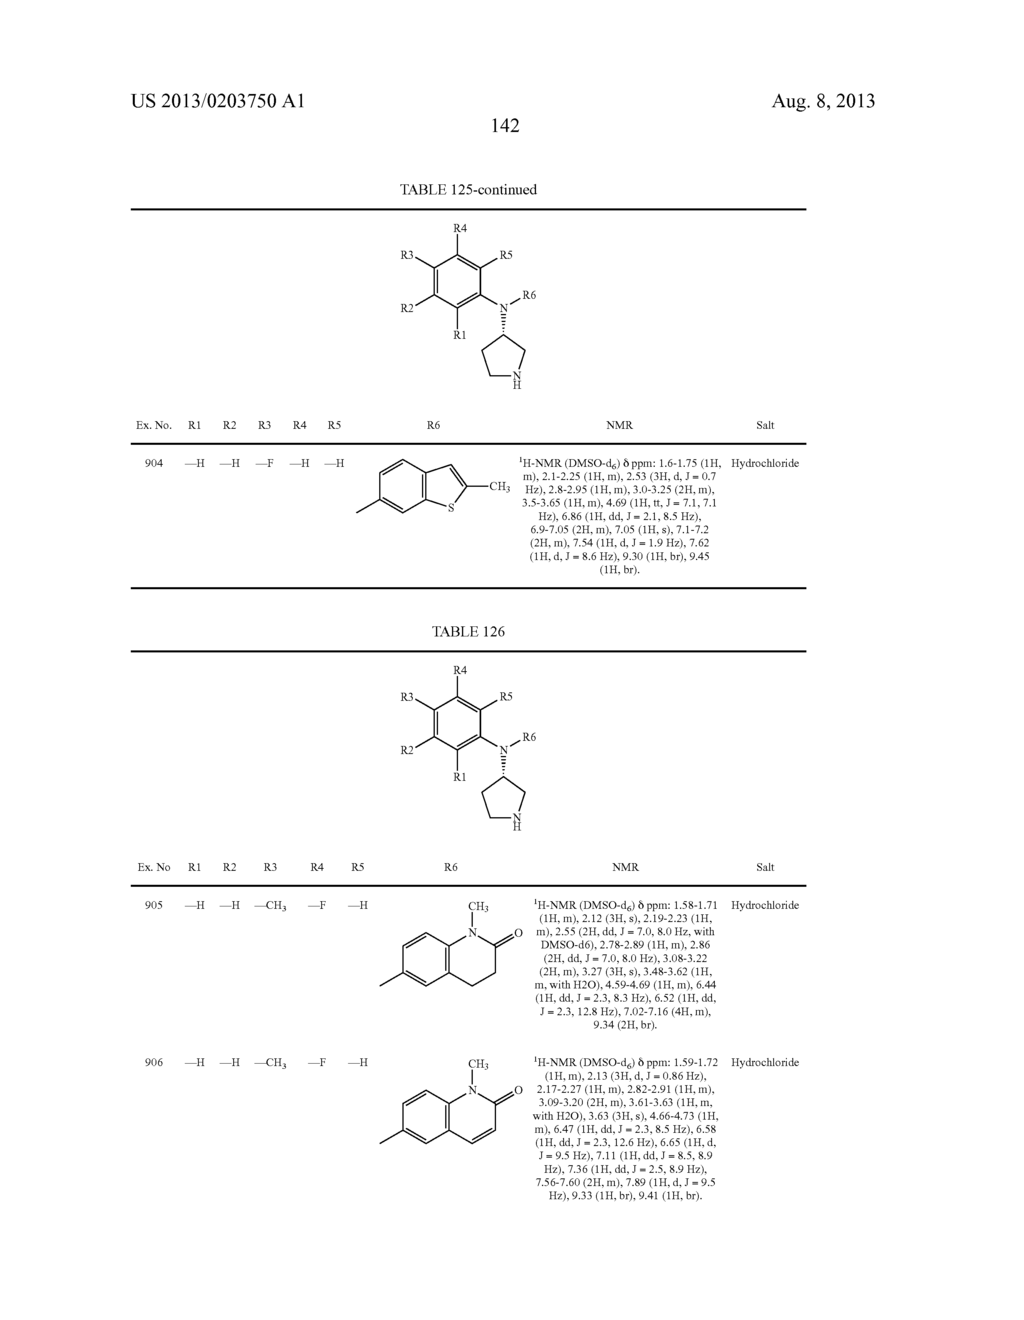 N,N-SUBSTITUTED 3-AMINOPYRROLIDINE COMPOUNDS USEFUL AS MONOAMINES REUPTAKE     INHIBITORS - diagram, schematic, and image 143